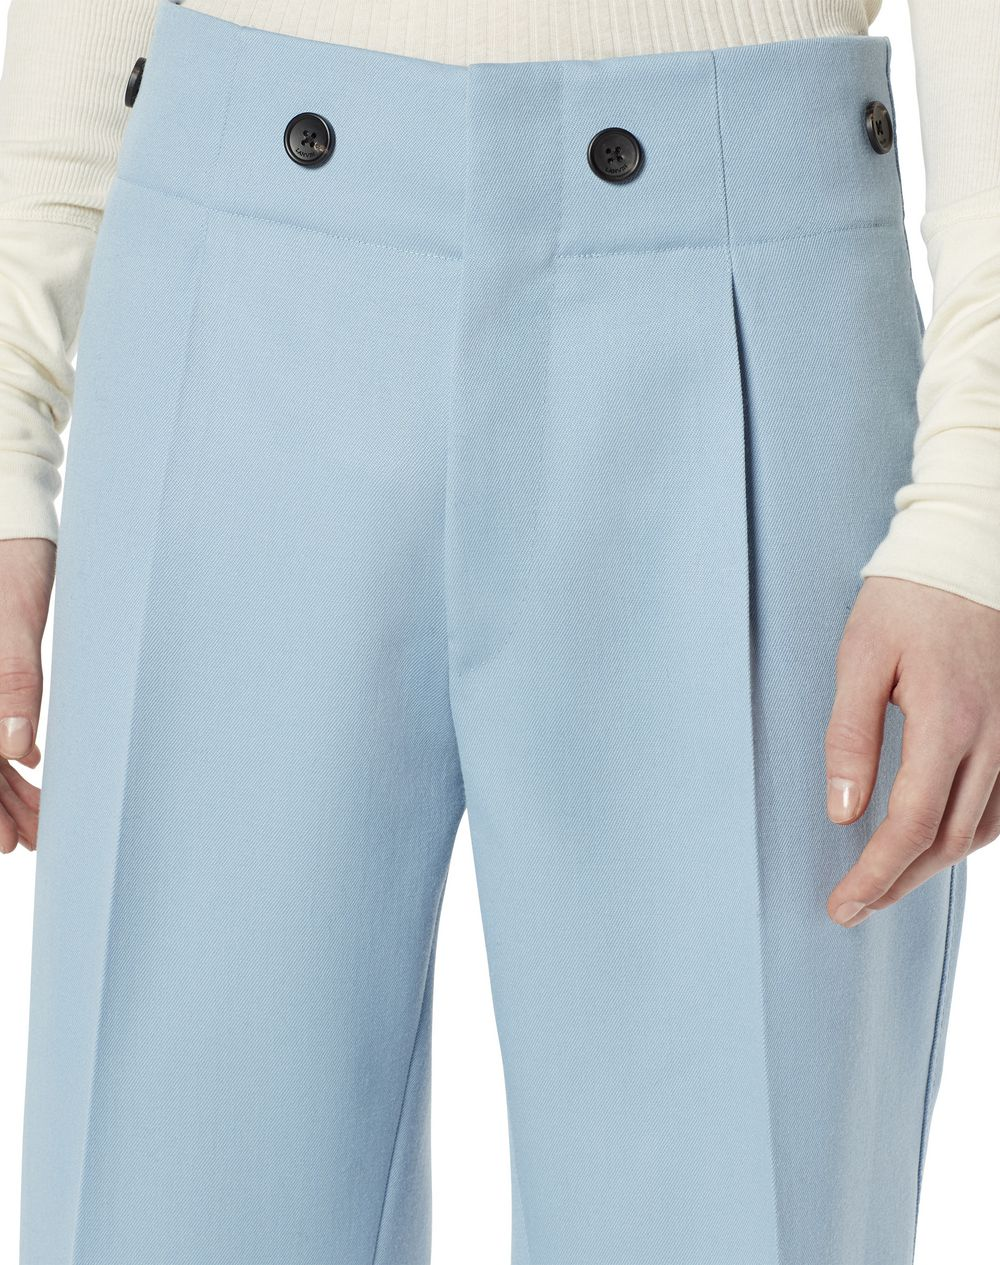 TAILORED TROUSERS  - Lanvin